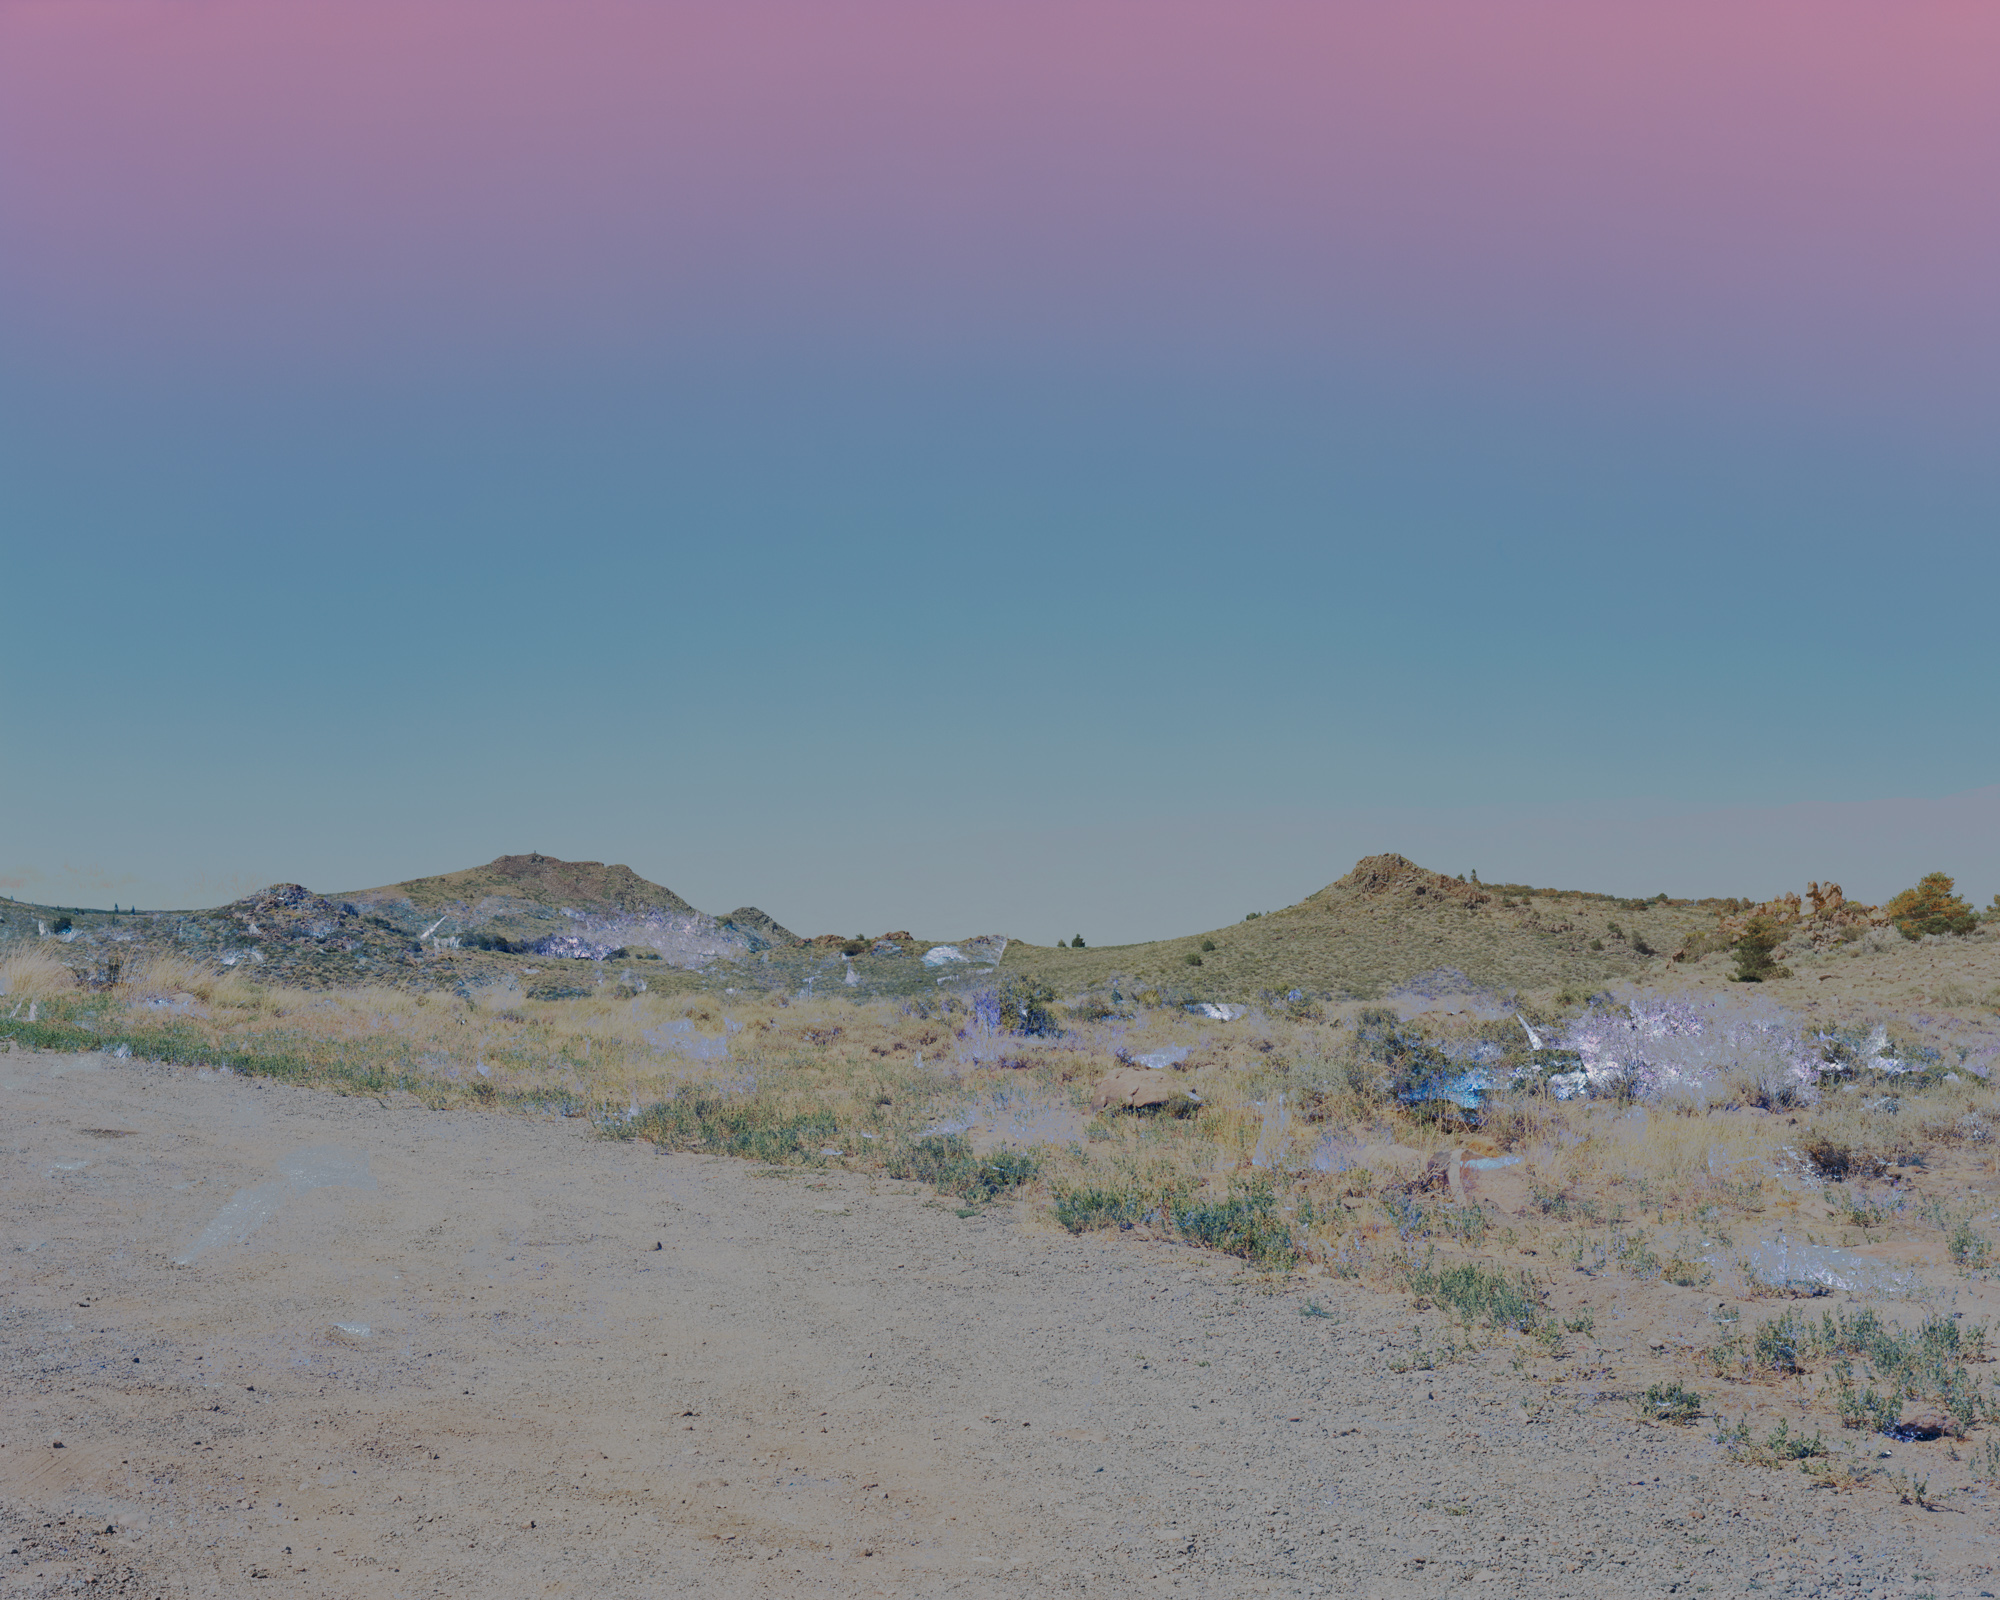 Pass 2 , 2013 archival pigment print 25.5 x 32 inches Edition 1 of 3 + 1 AP